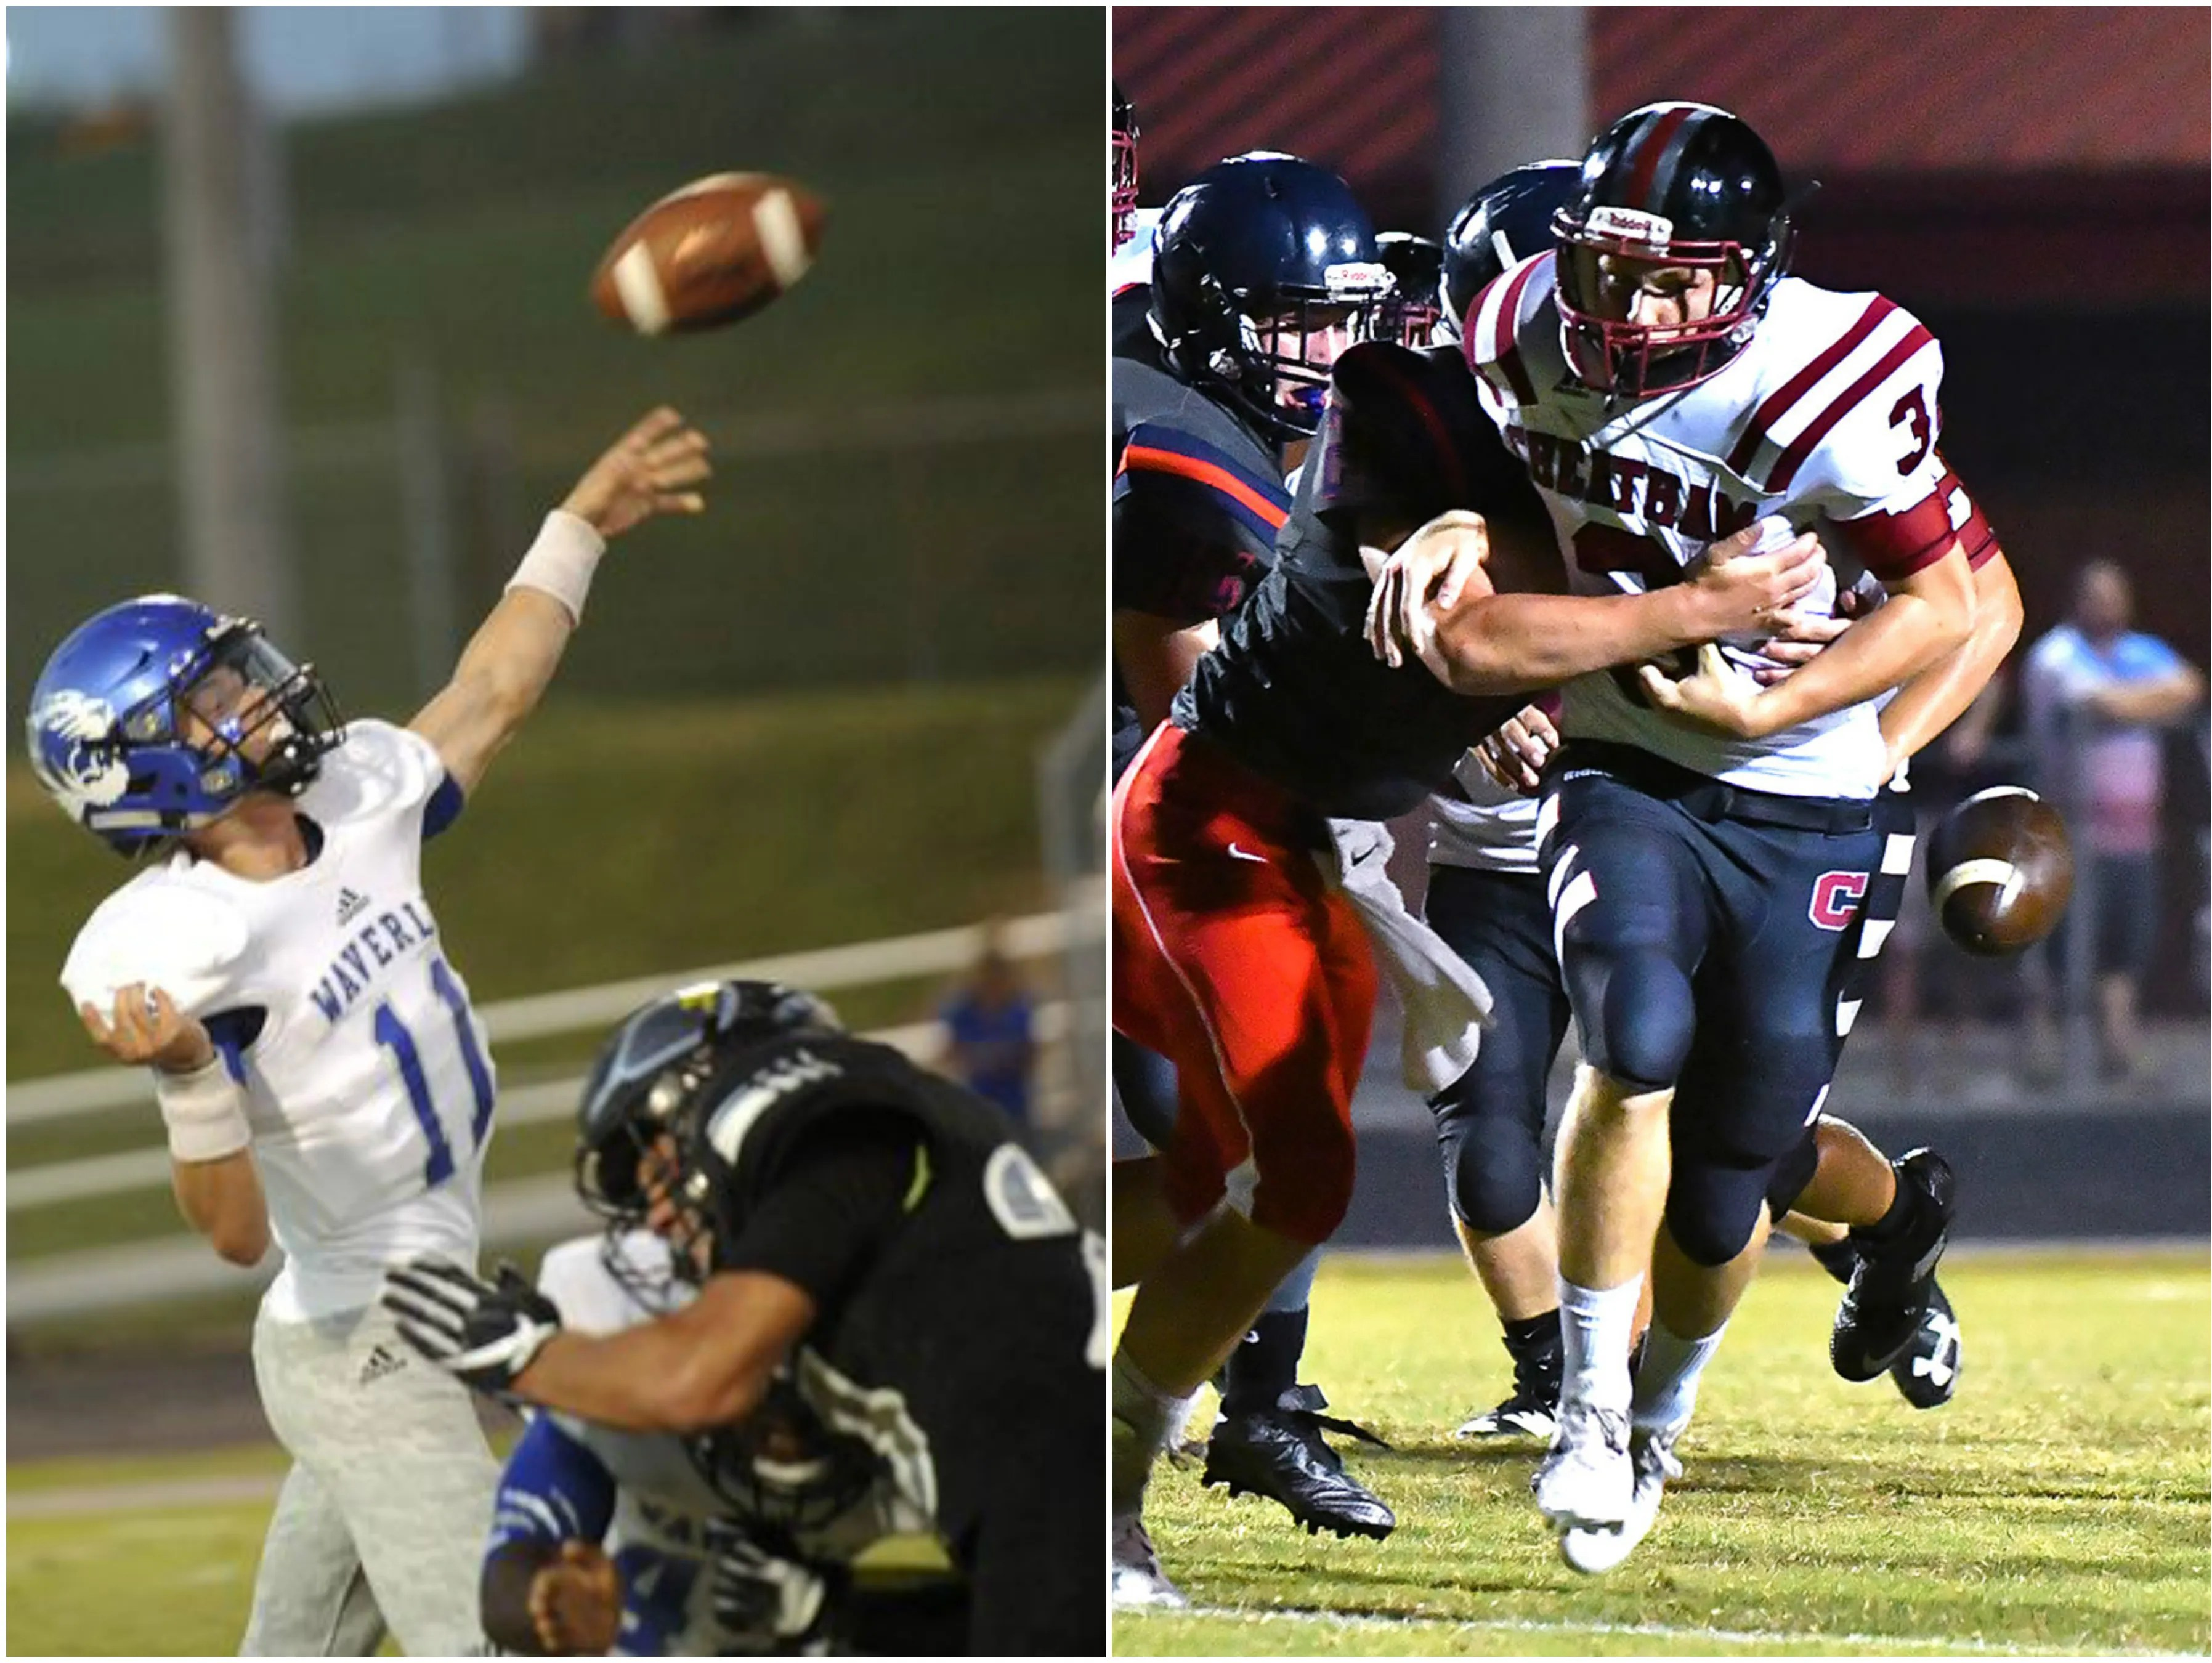 Waverly Central quarterback Gavin Stanfield (left) and Cheatham County running back Dylan Lassiter (right).